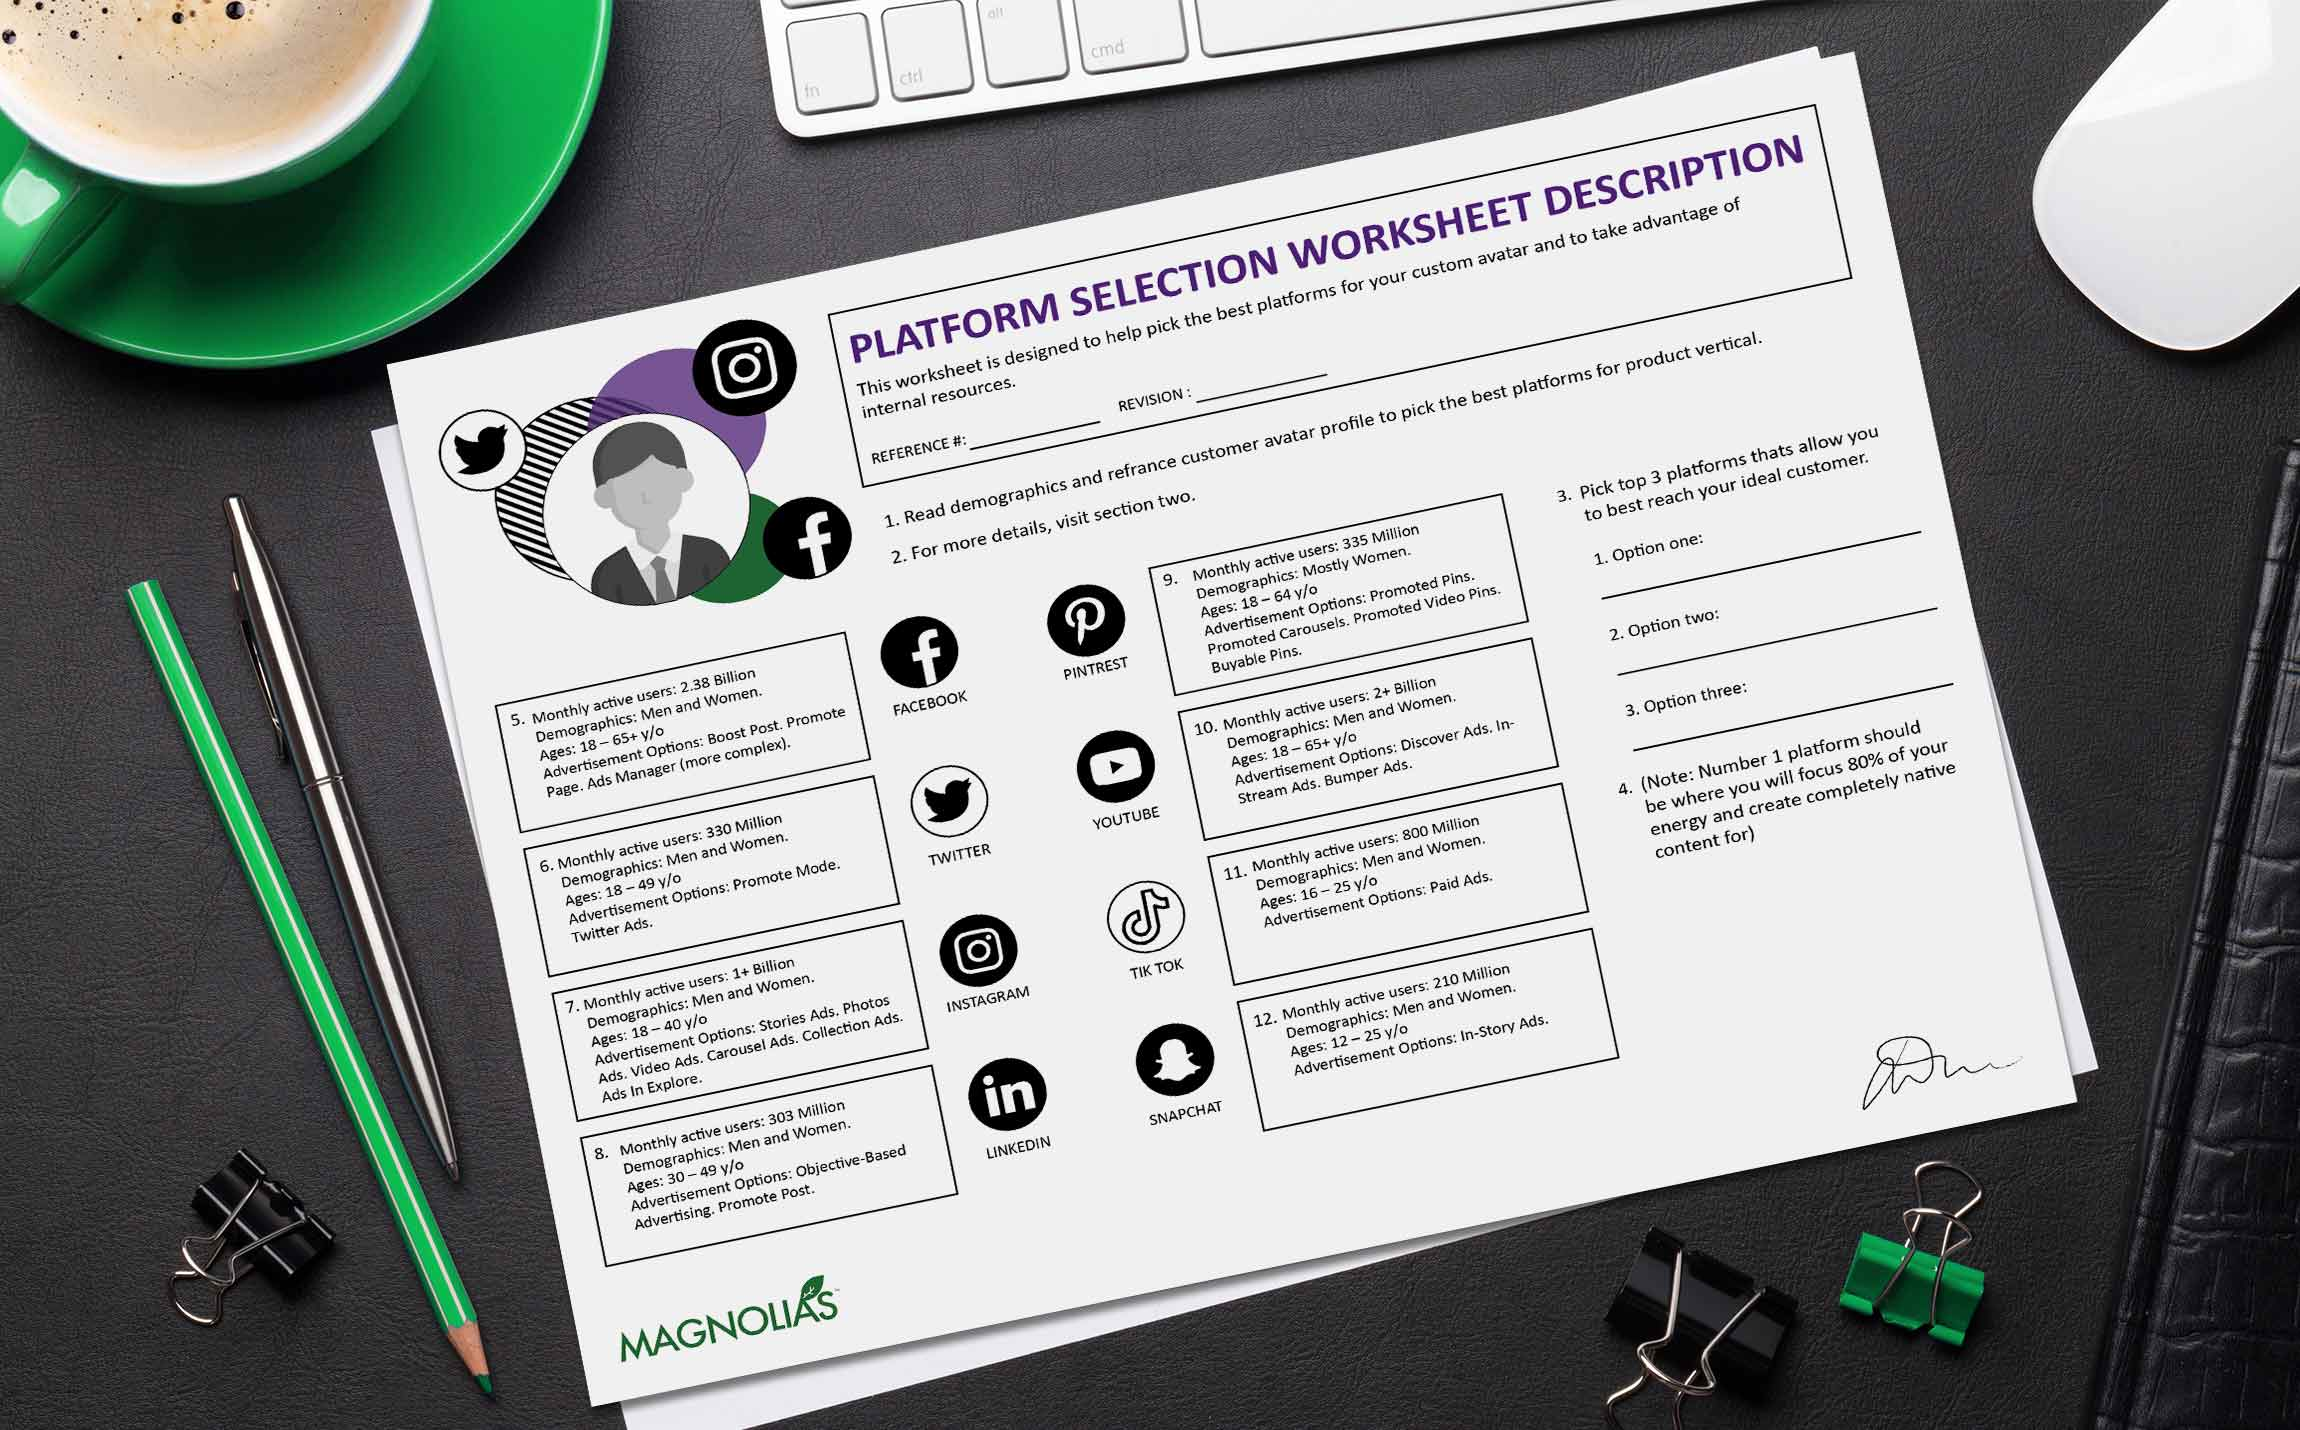 Be present on social media platforms that relate to your customer avatars with this free social media platform selection worksheet.